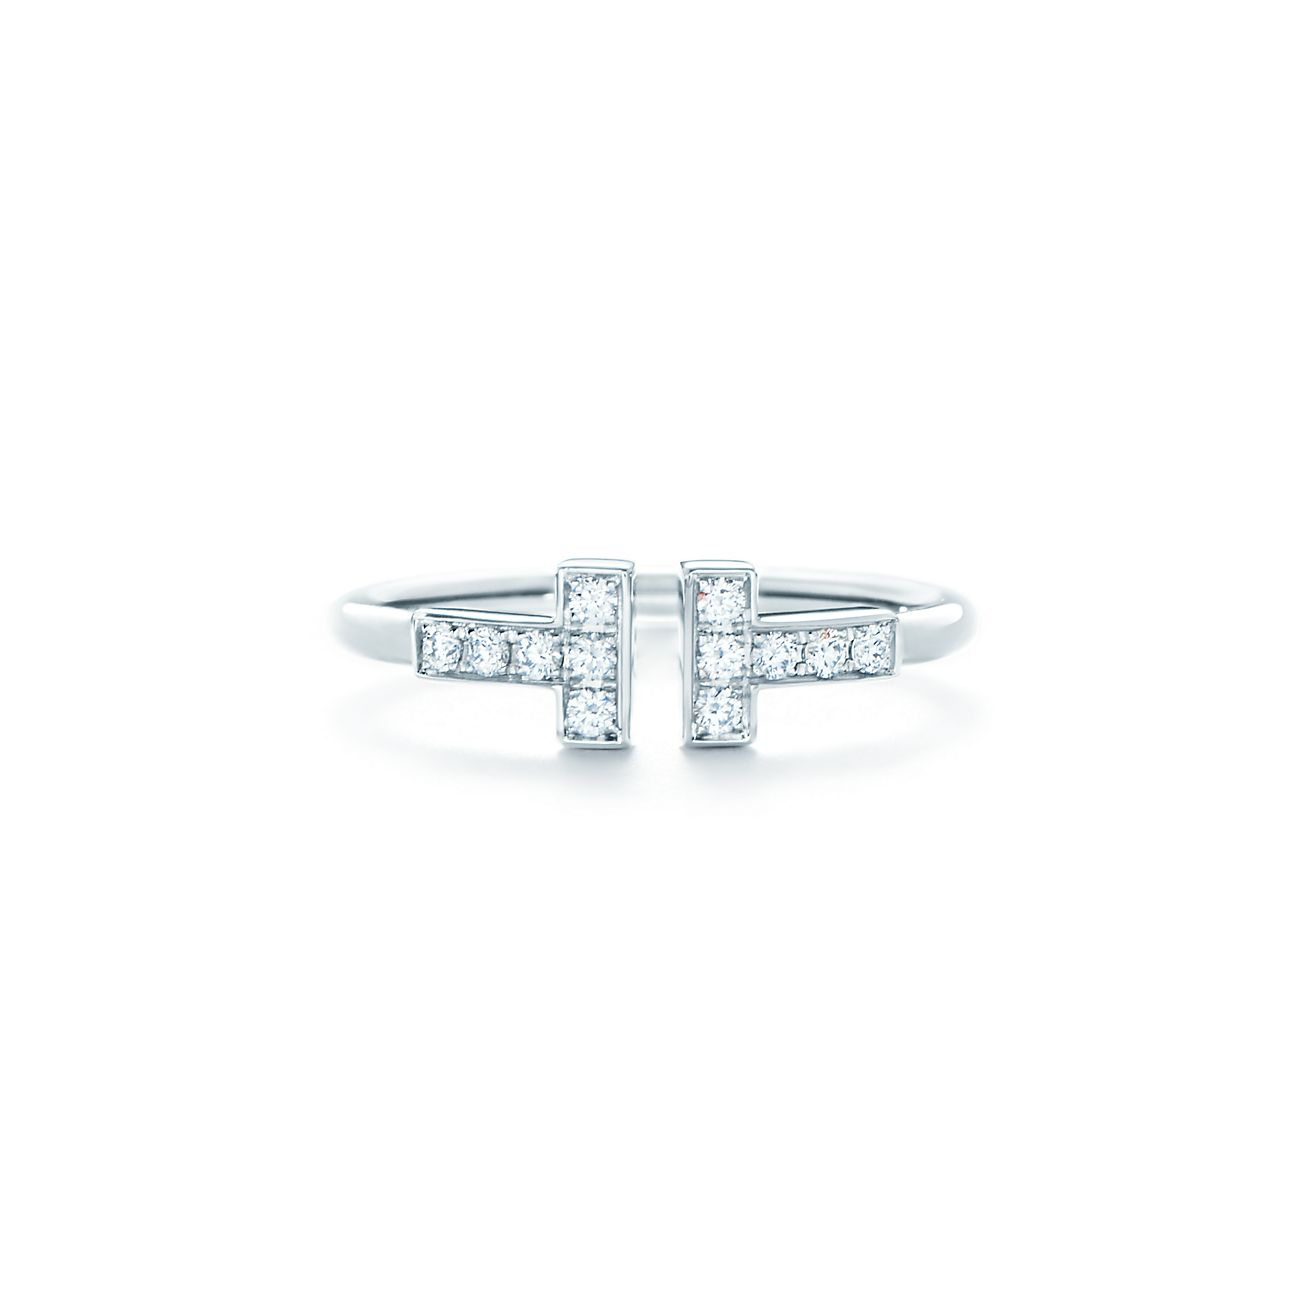 Tiffany T wire ring in 18k white gold - Size 9 Tiffany & Co.